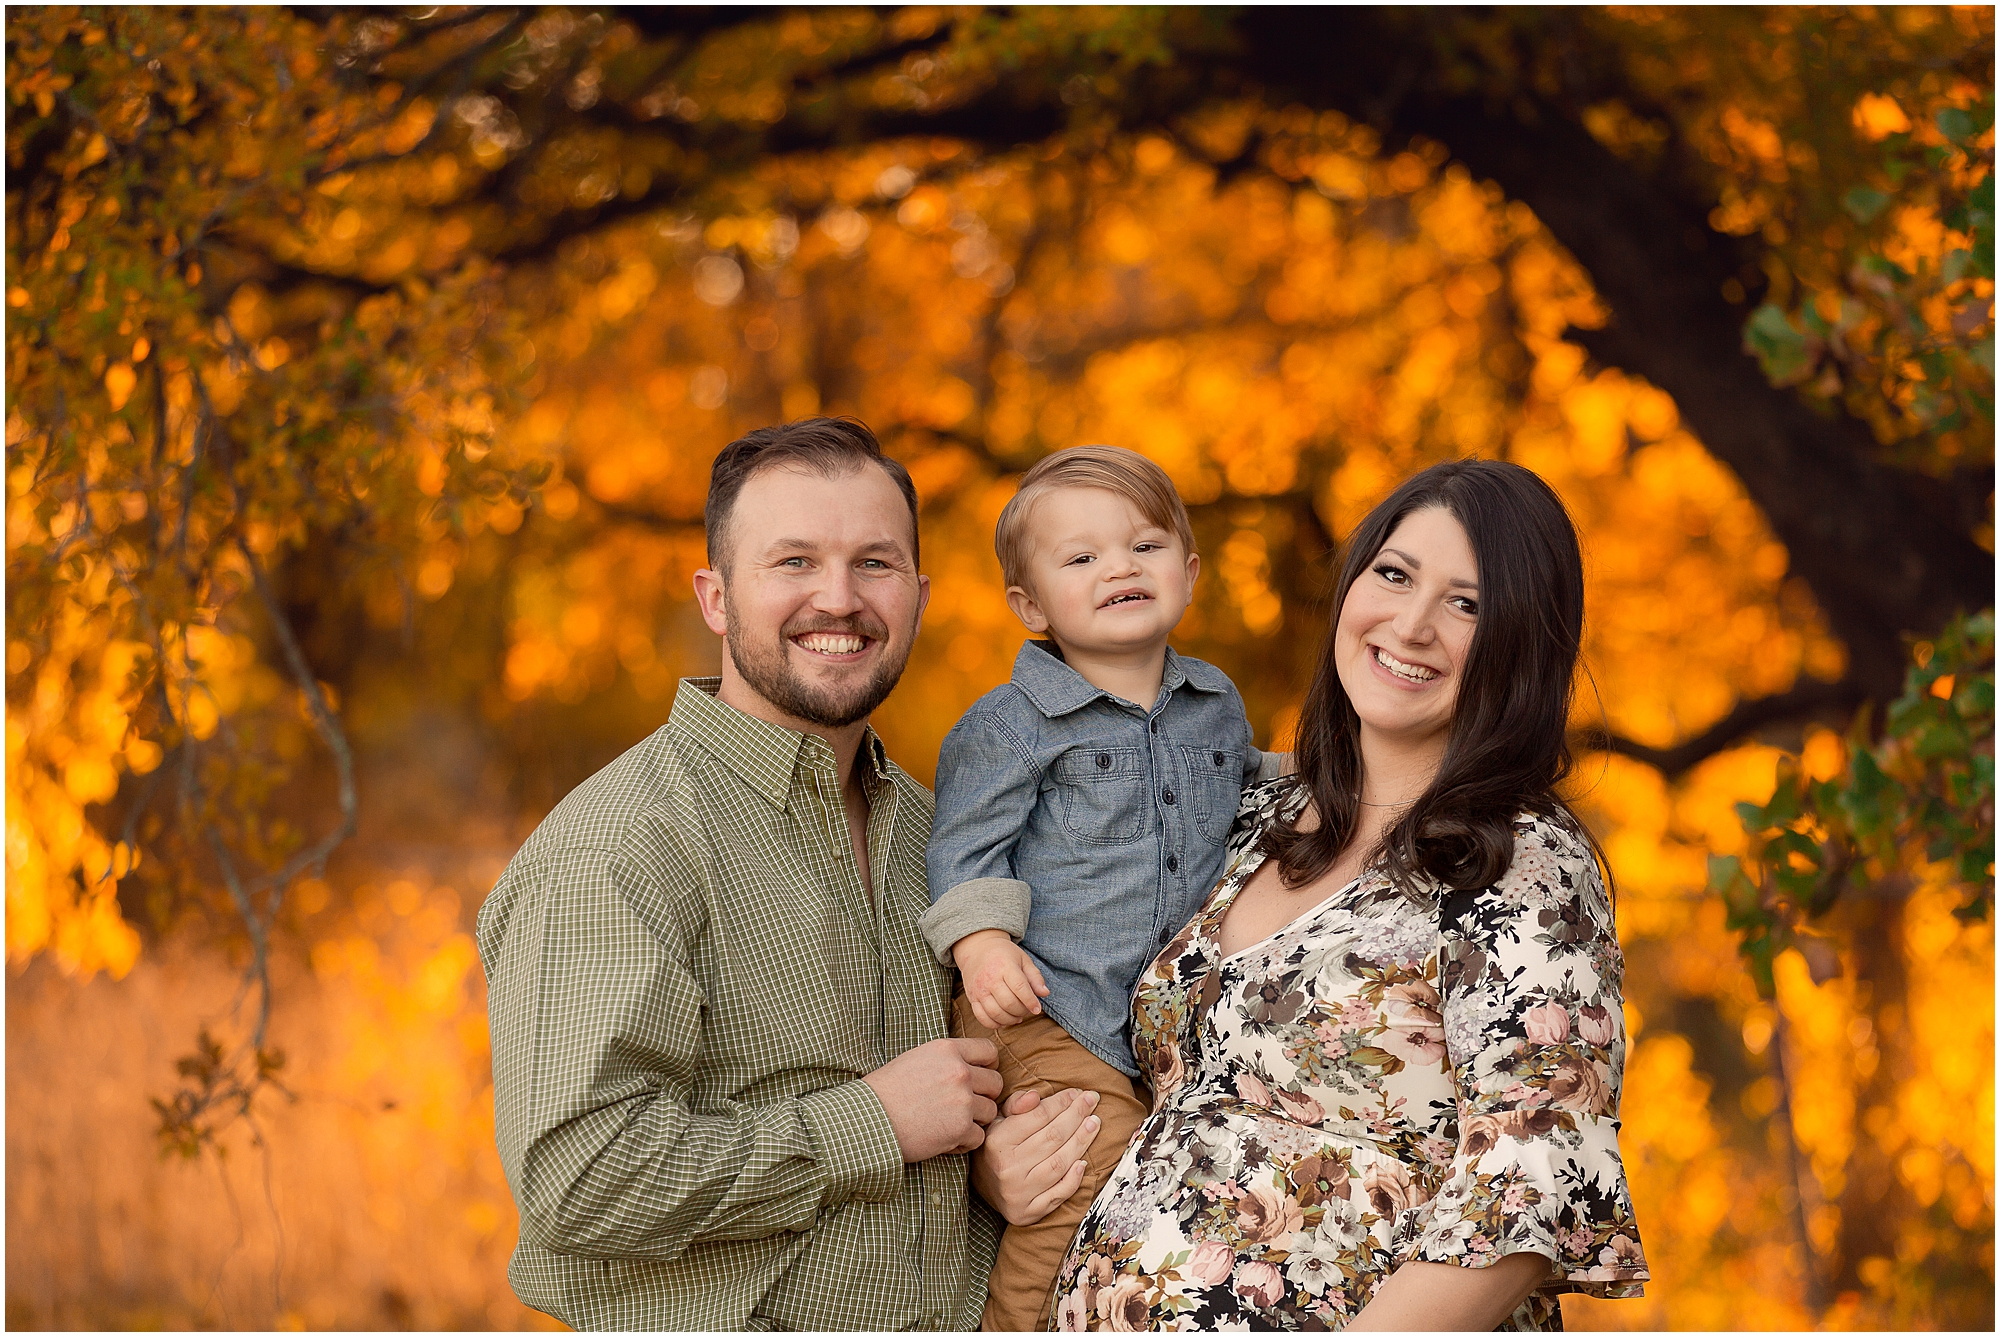 Flower Mound Portraits, DFW Photographer, maternity photos in dfw